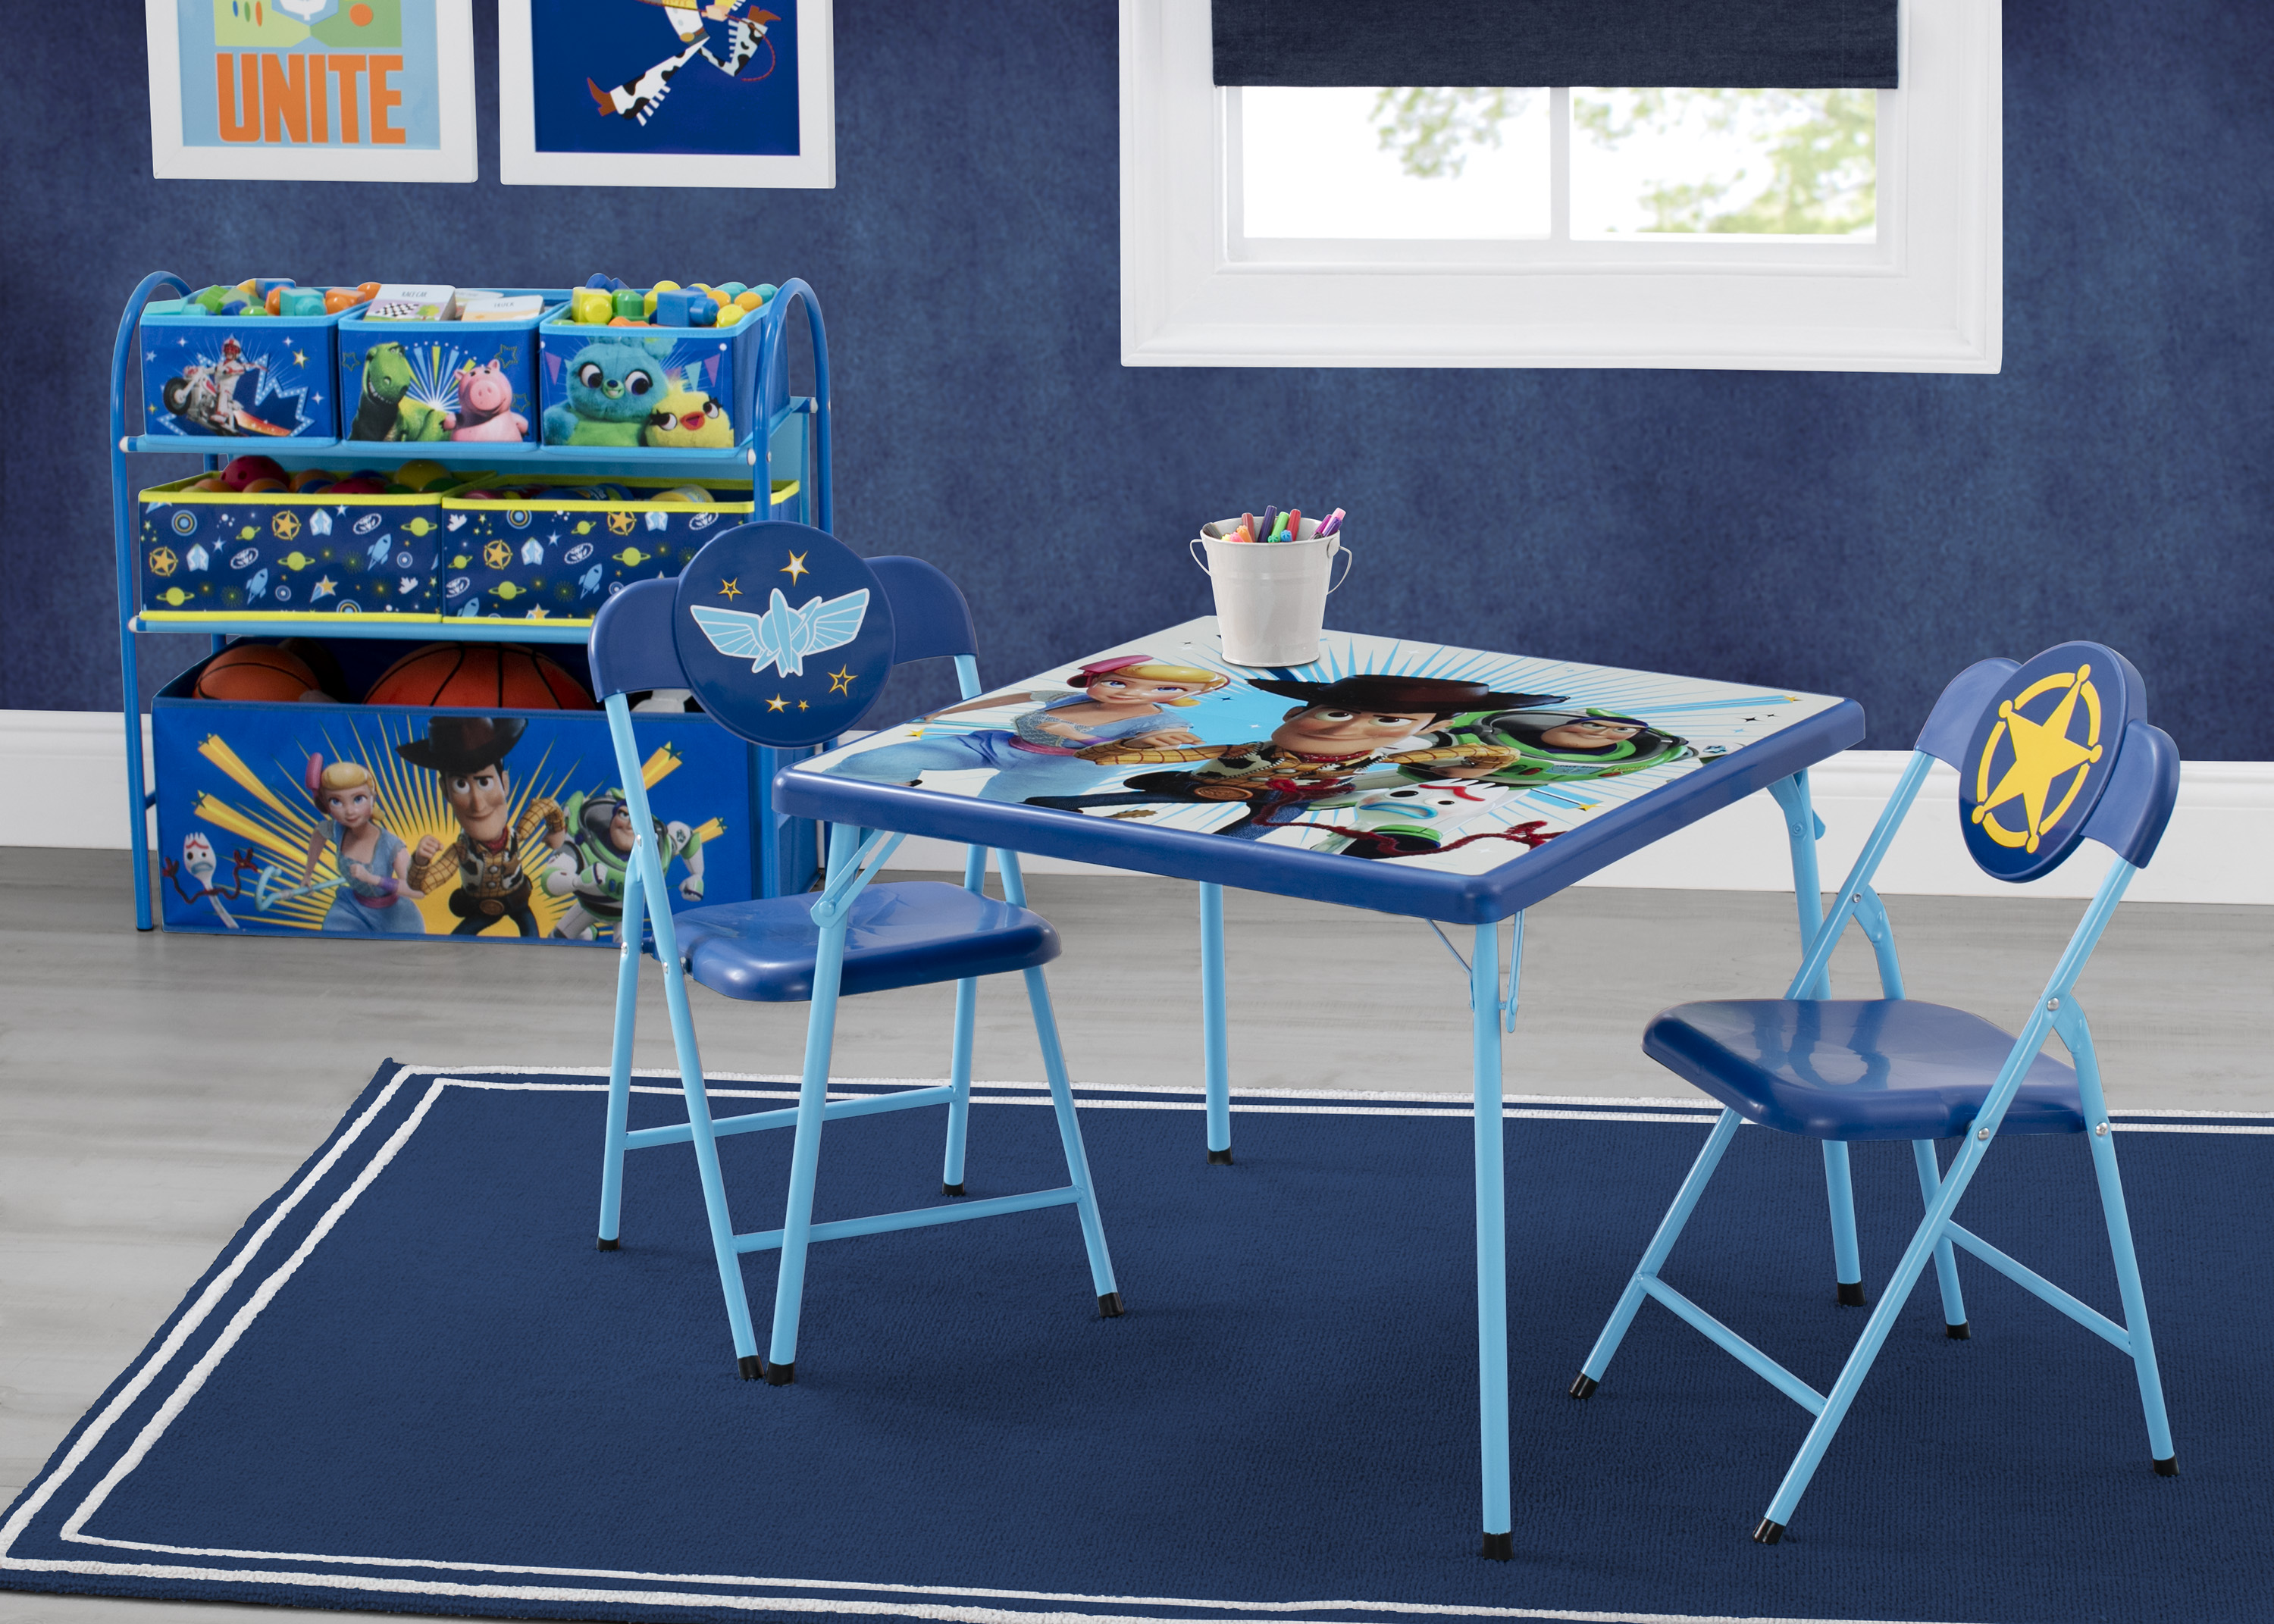 Disney/Pixar Toy Story 4 4-Piece Toddler Playroom Set by Delta Children - Includes Table & 2 Chair Set and Multi-Bin Toy Organizer - Walmart.com